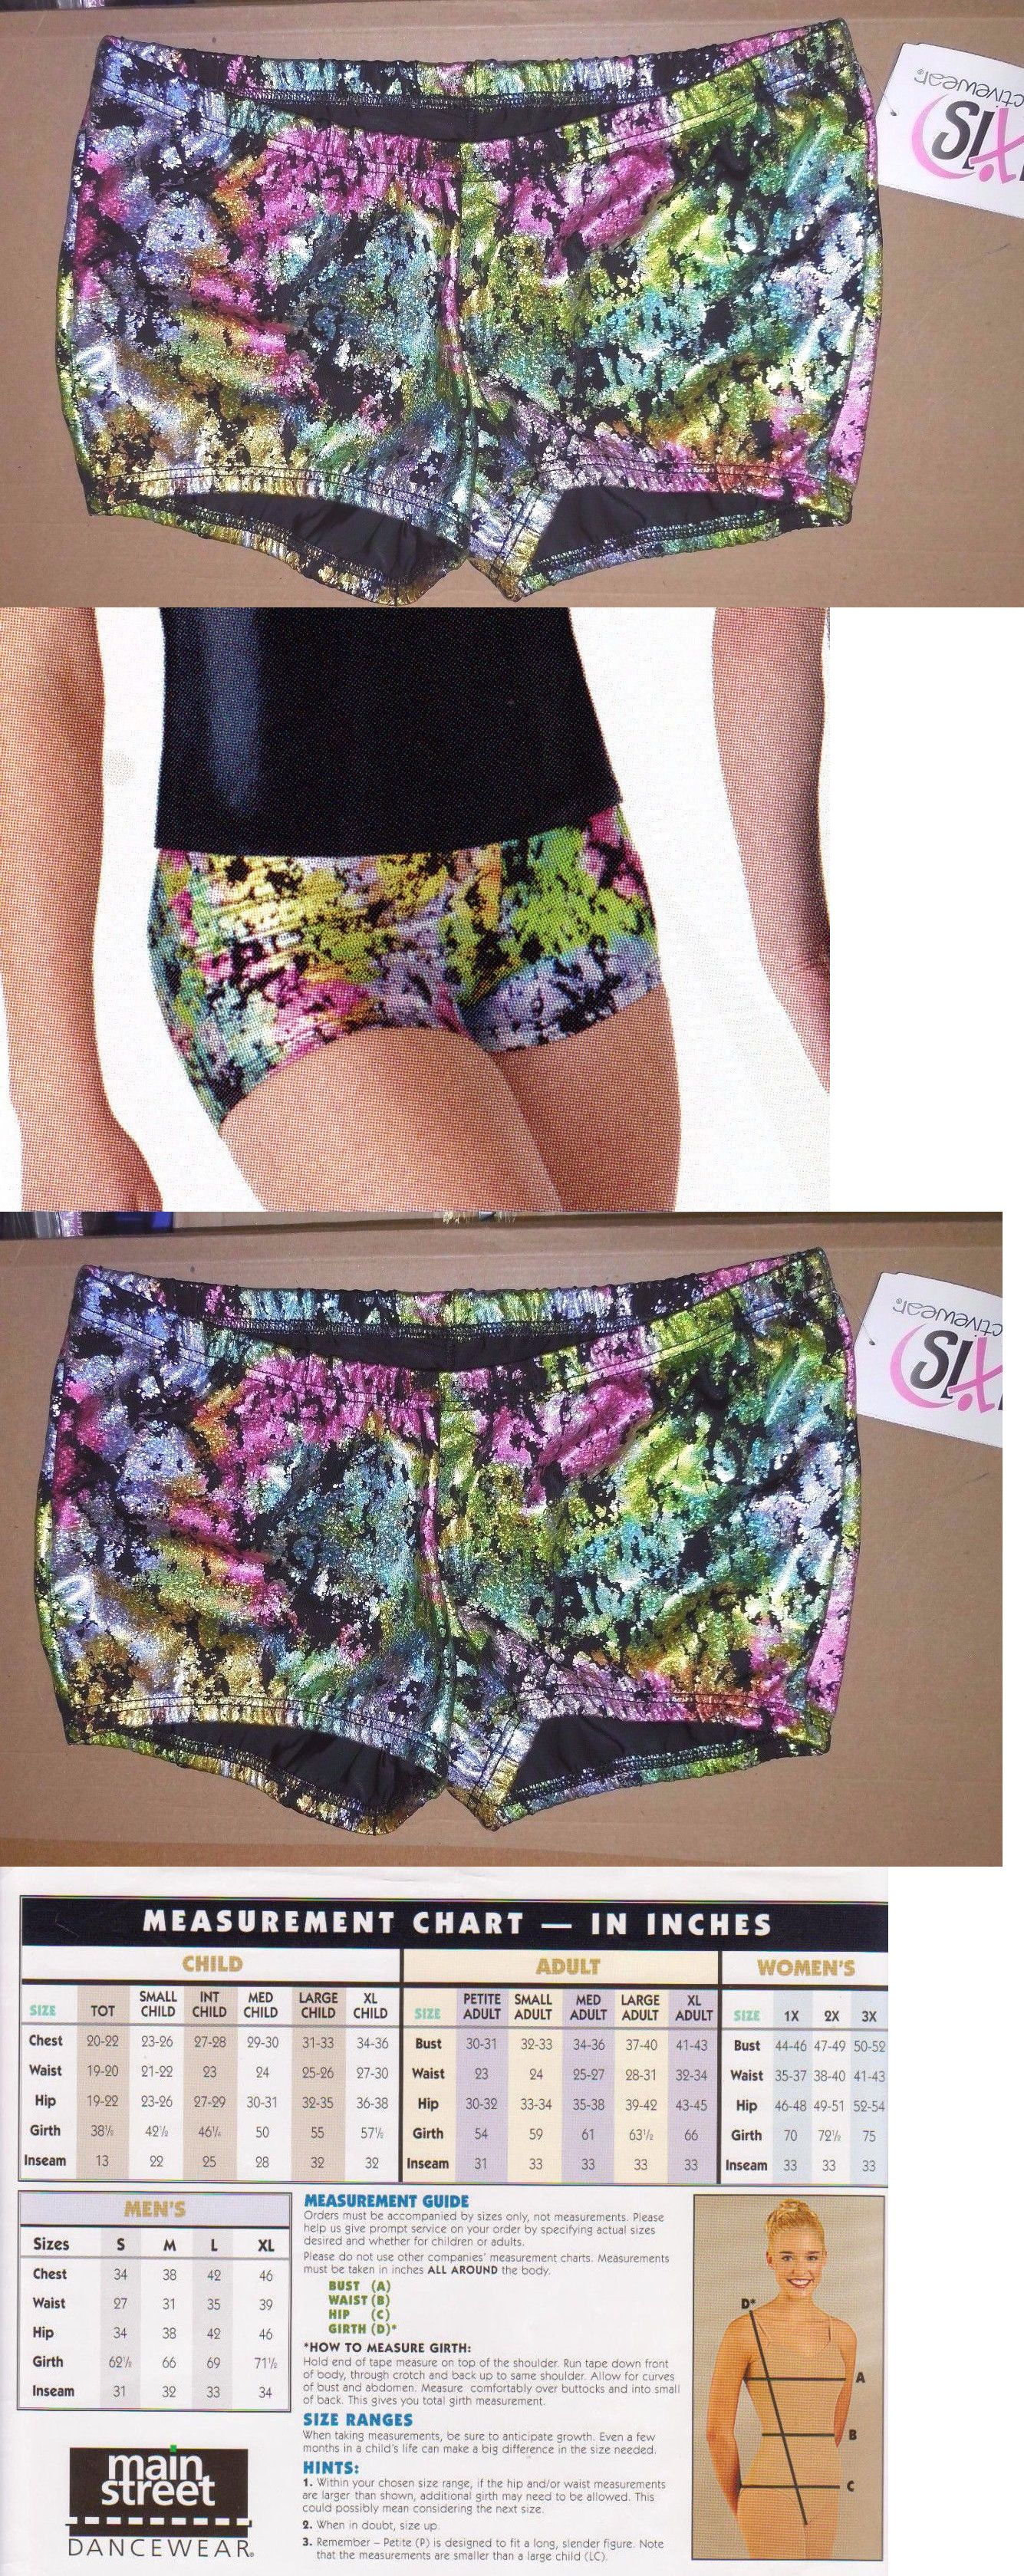 Axis Booty Shorts Dance Gymnastics Multi Color Foil Print Girls Sizes 75086